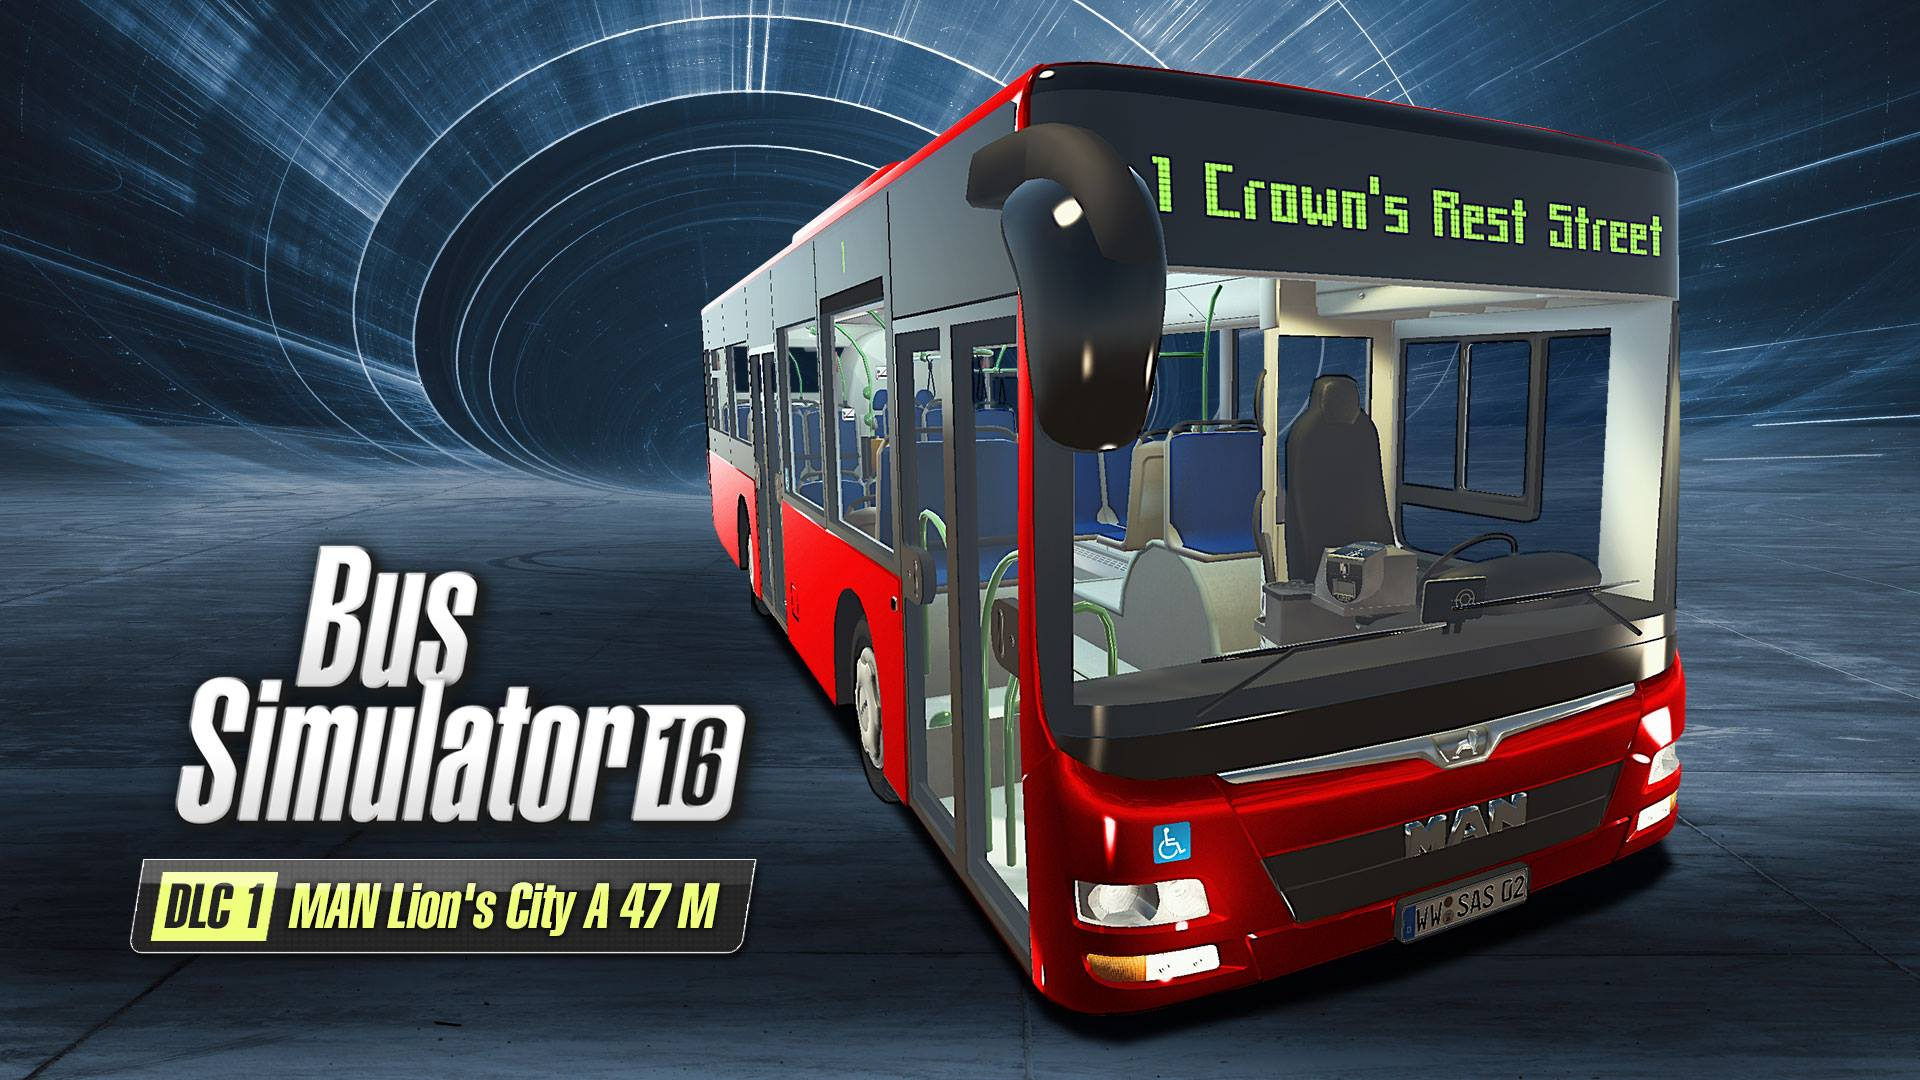 bus-simulator-16-first-dlc